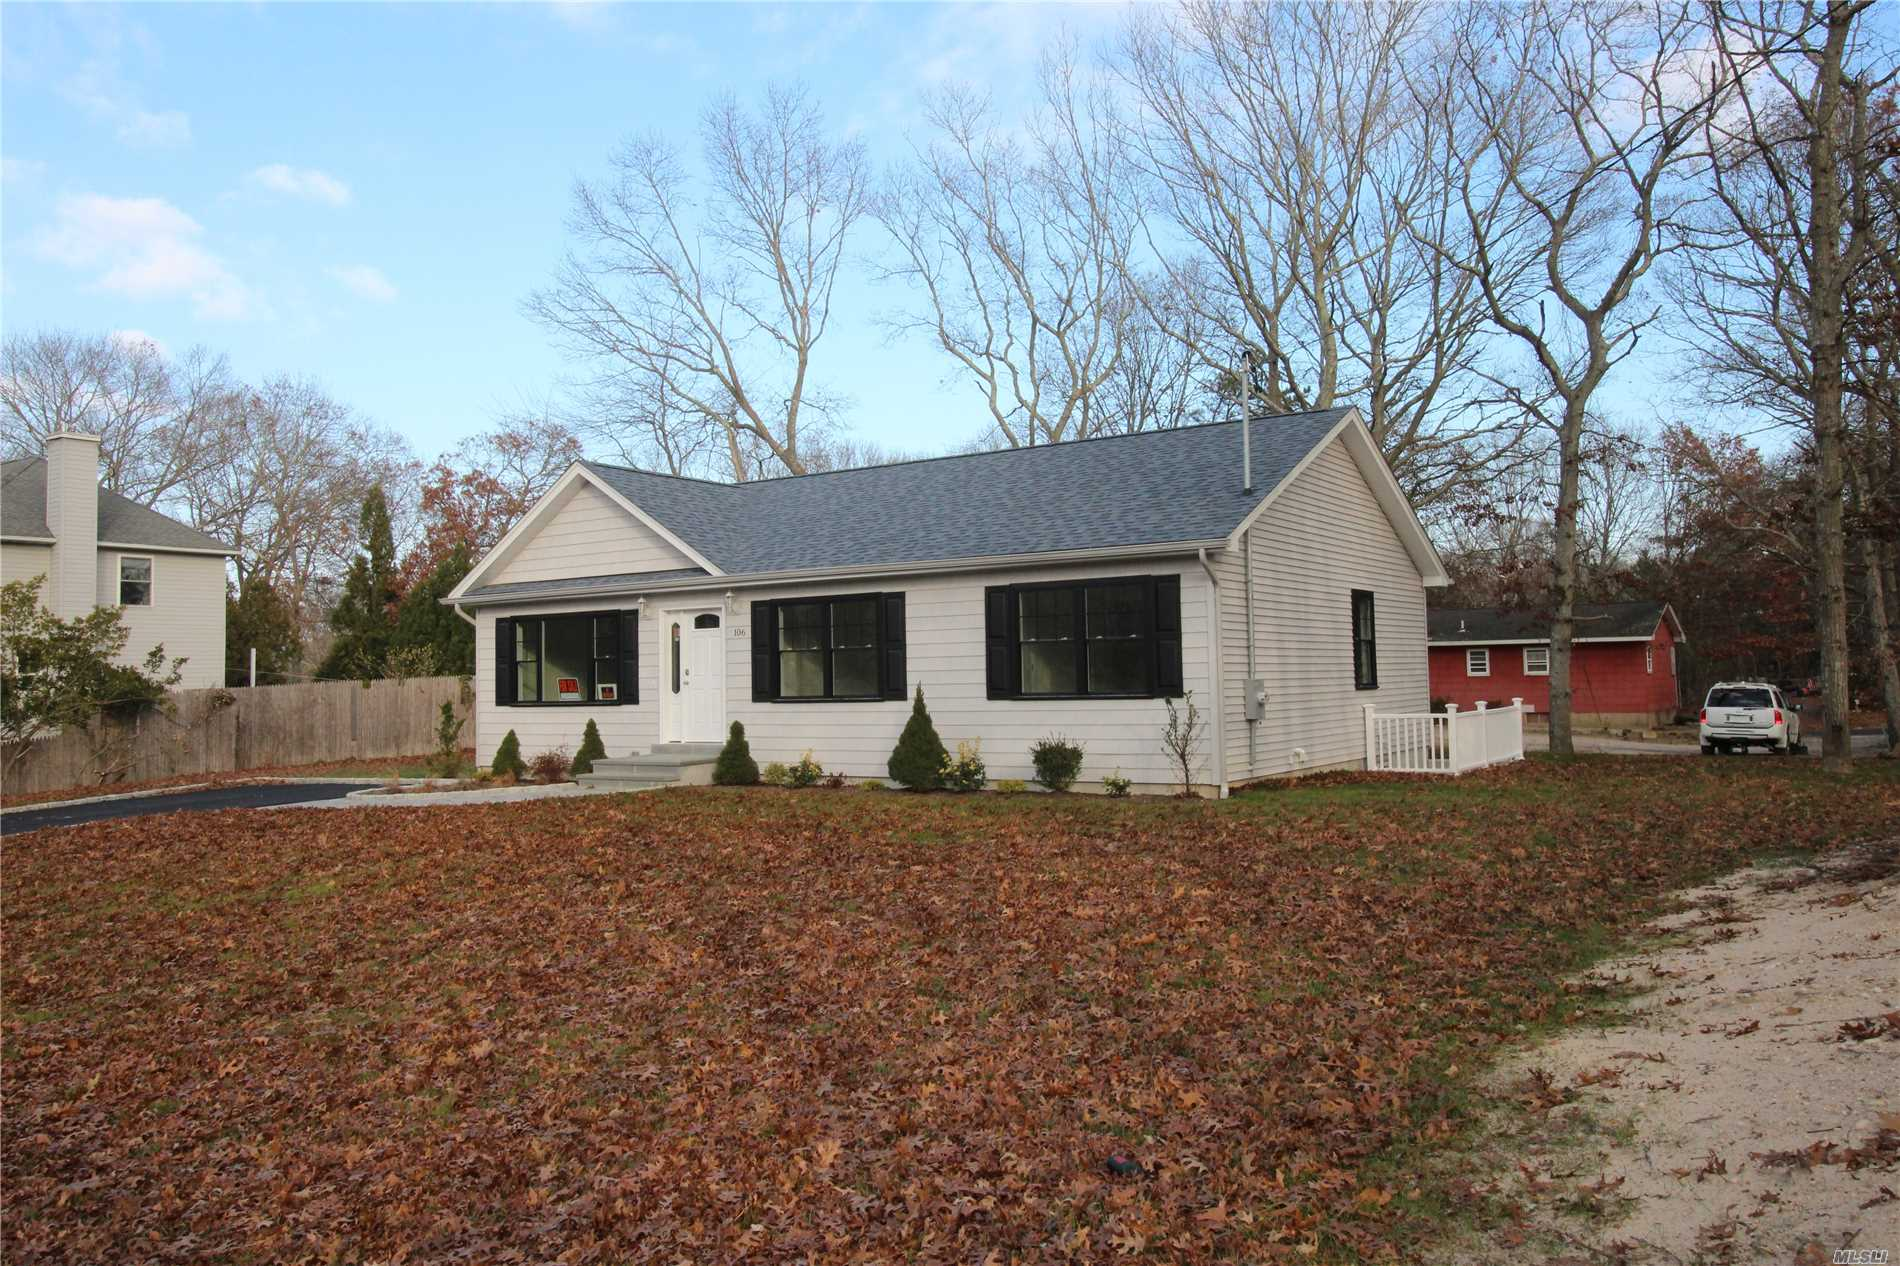 New Contemporary 1, 350Sq.Ft.Ranch. Features Vaulted Ceiling L/R W/Laminate Flooring Throughout. Eat In Quartz Kitchen W/Stainless Appliances.Mastr.Bedroom W/Private Bath & Double Closets.Two Additional Bedrooms&Bath.Full 8'Ceiling Basement With Exterior Staircase&Egress Window.Citygas Heat.All Energy Star Home.Cobblestone Lined Driveway, Rear Stone Patio, Cac, Centralvac, 2X6 Const.. A Must See Home!